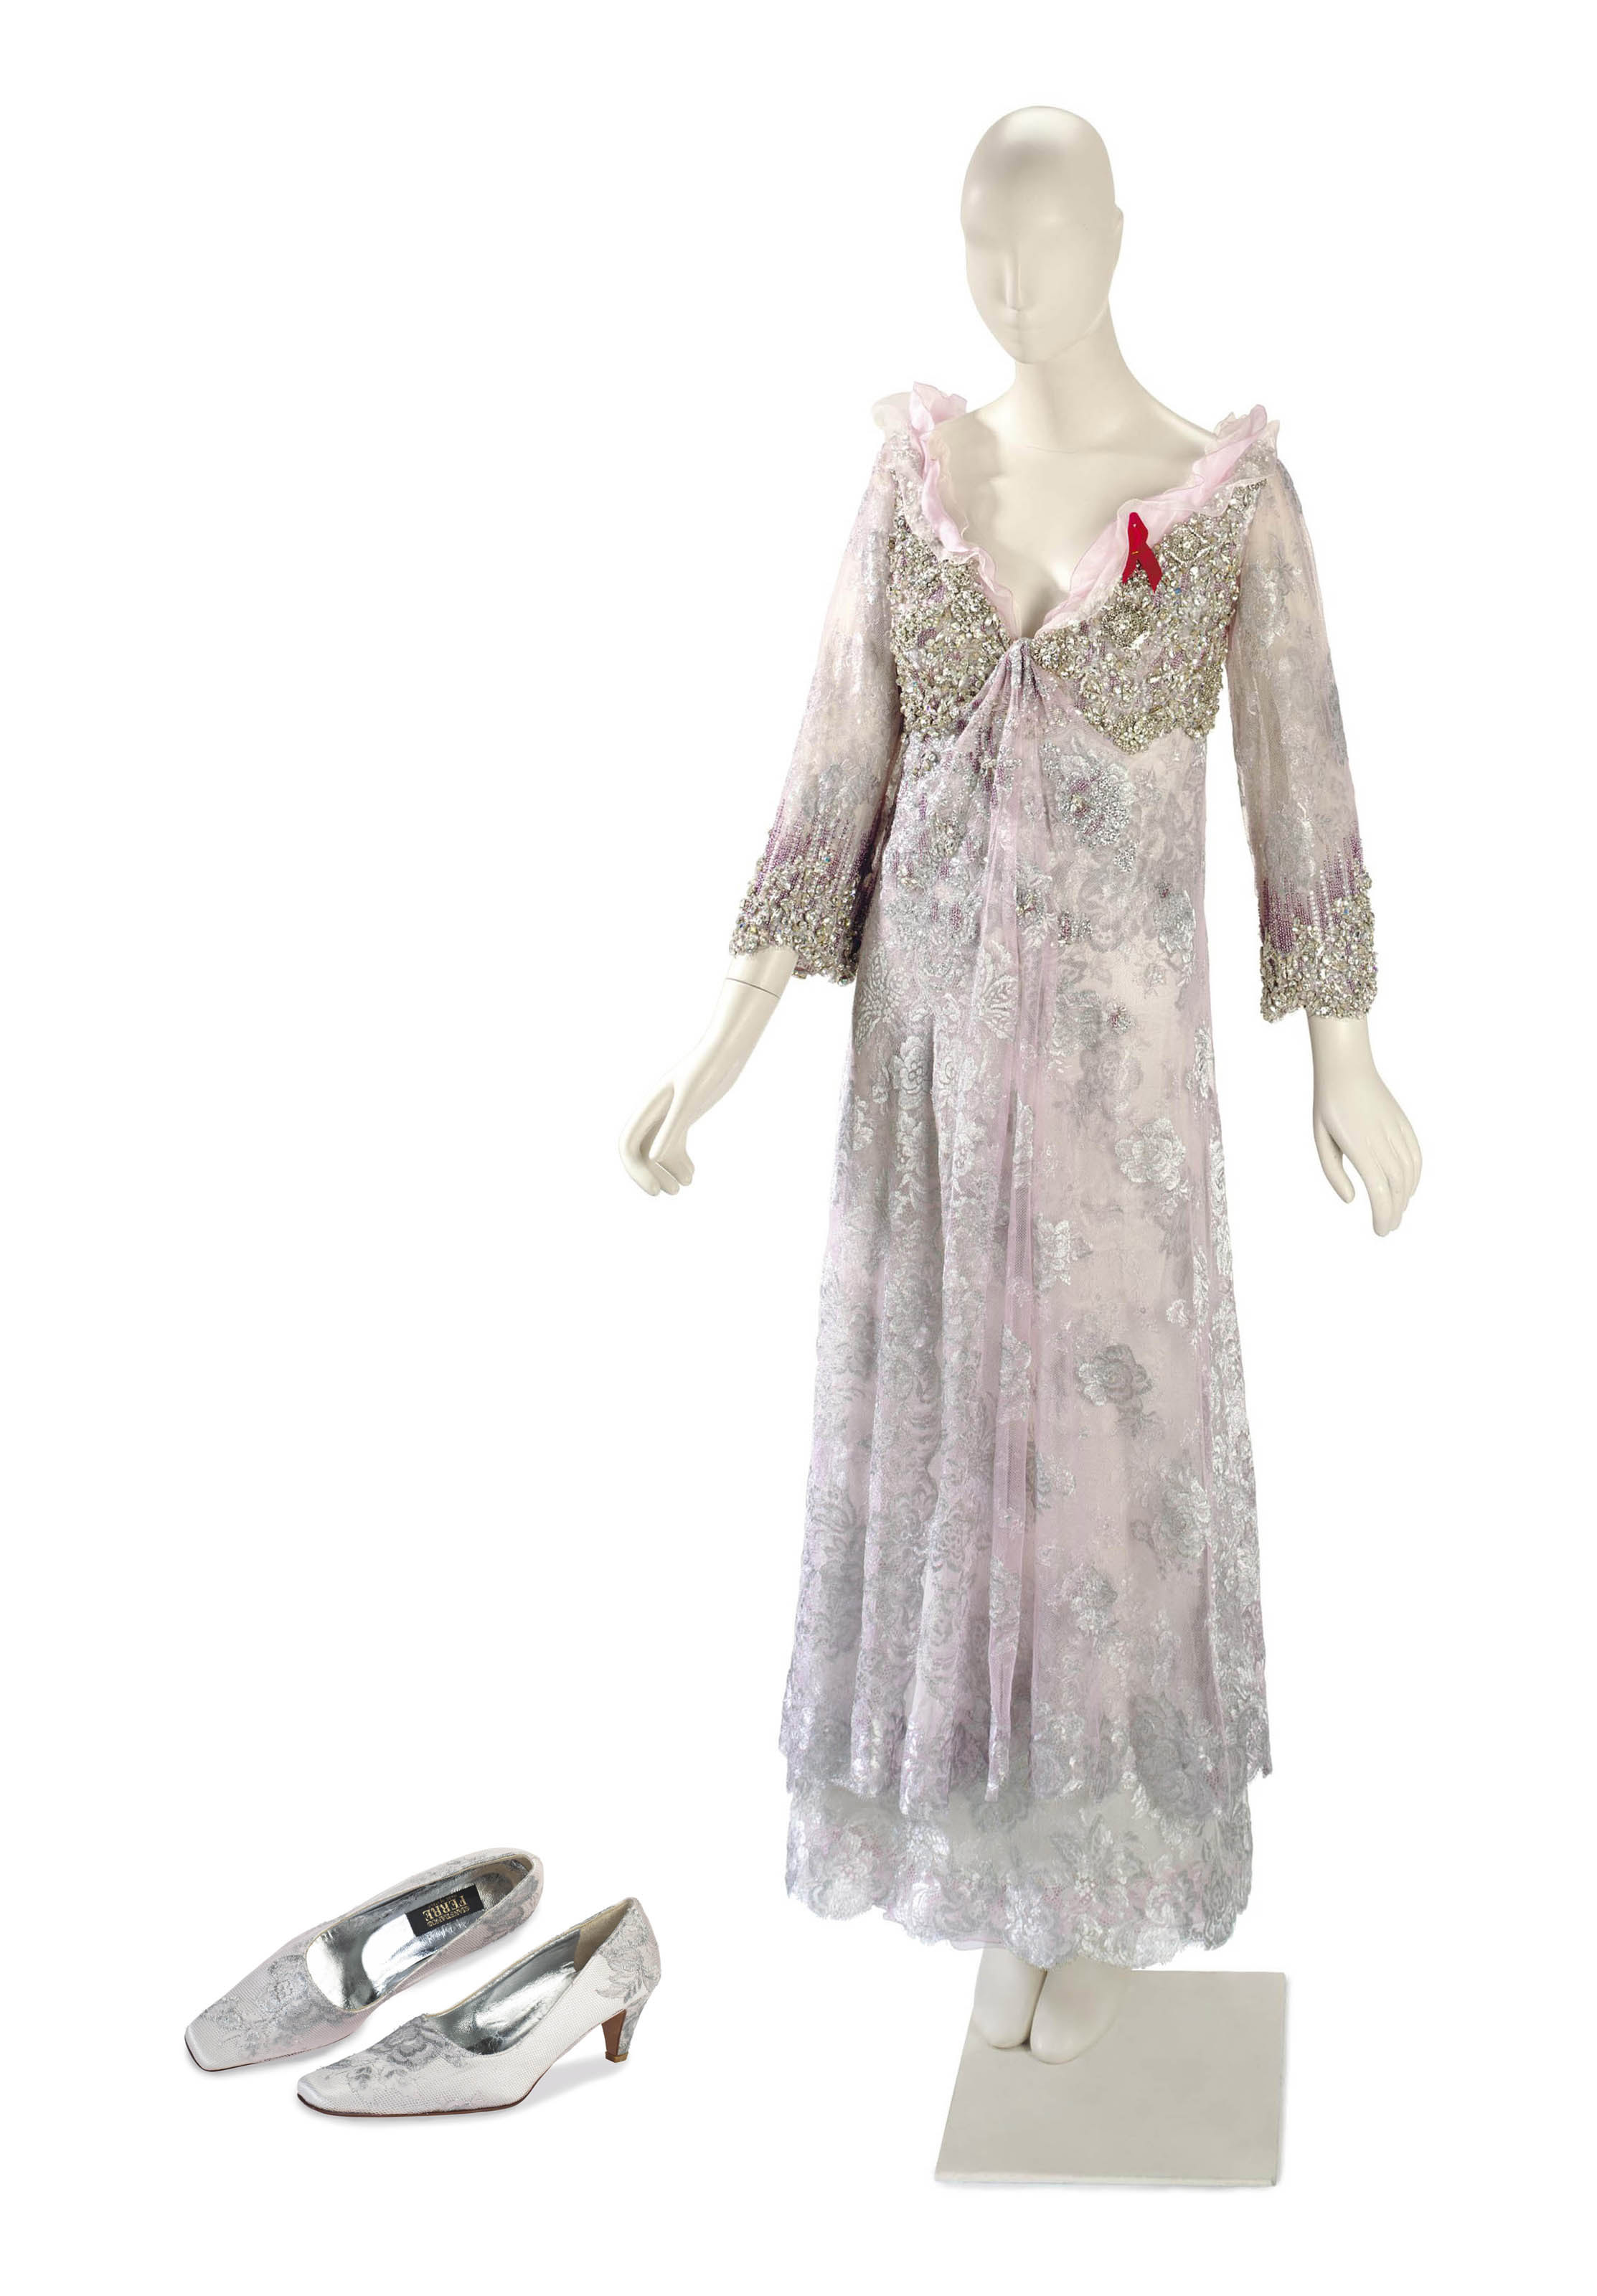 AN EVENING GOWN OF LILAC AND SILVER LACE WITH A RED 'AIDS' RIBBON AND MATCHING SHOES